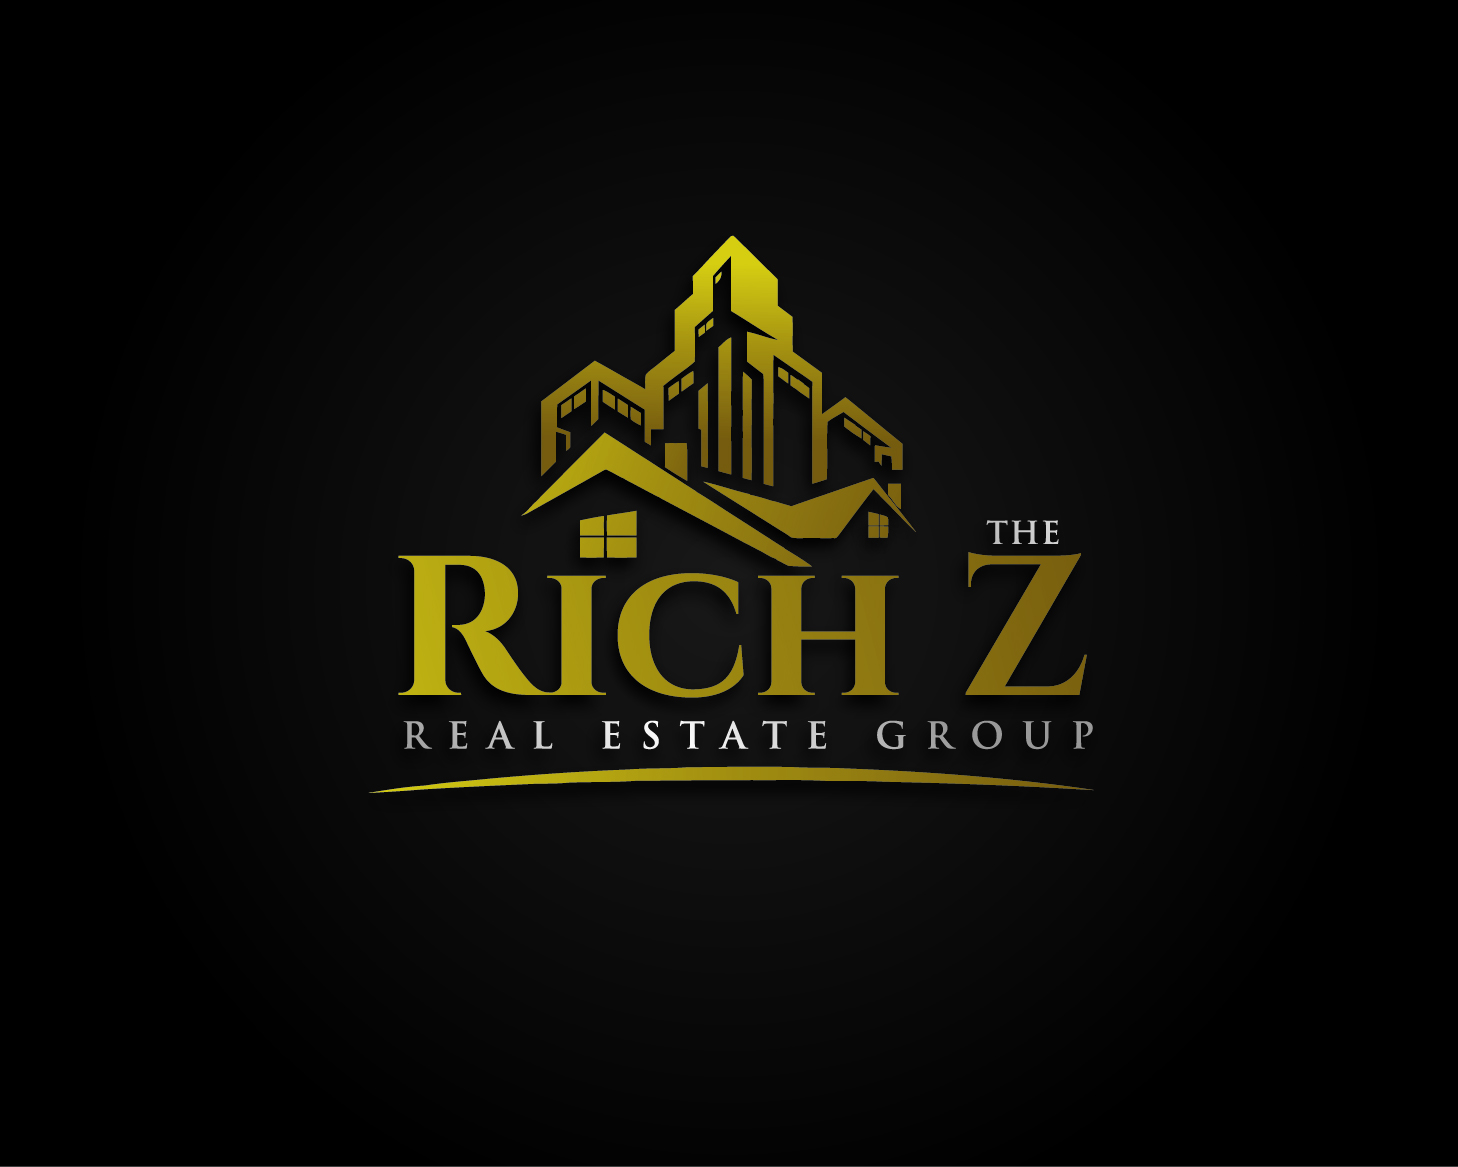 Logo Design by VENTSISLAV KOVACHEV - Entry No. 97 in the Logo Design Contest The Rich Z. Real Estate Group Logo Design.